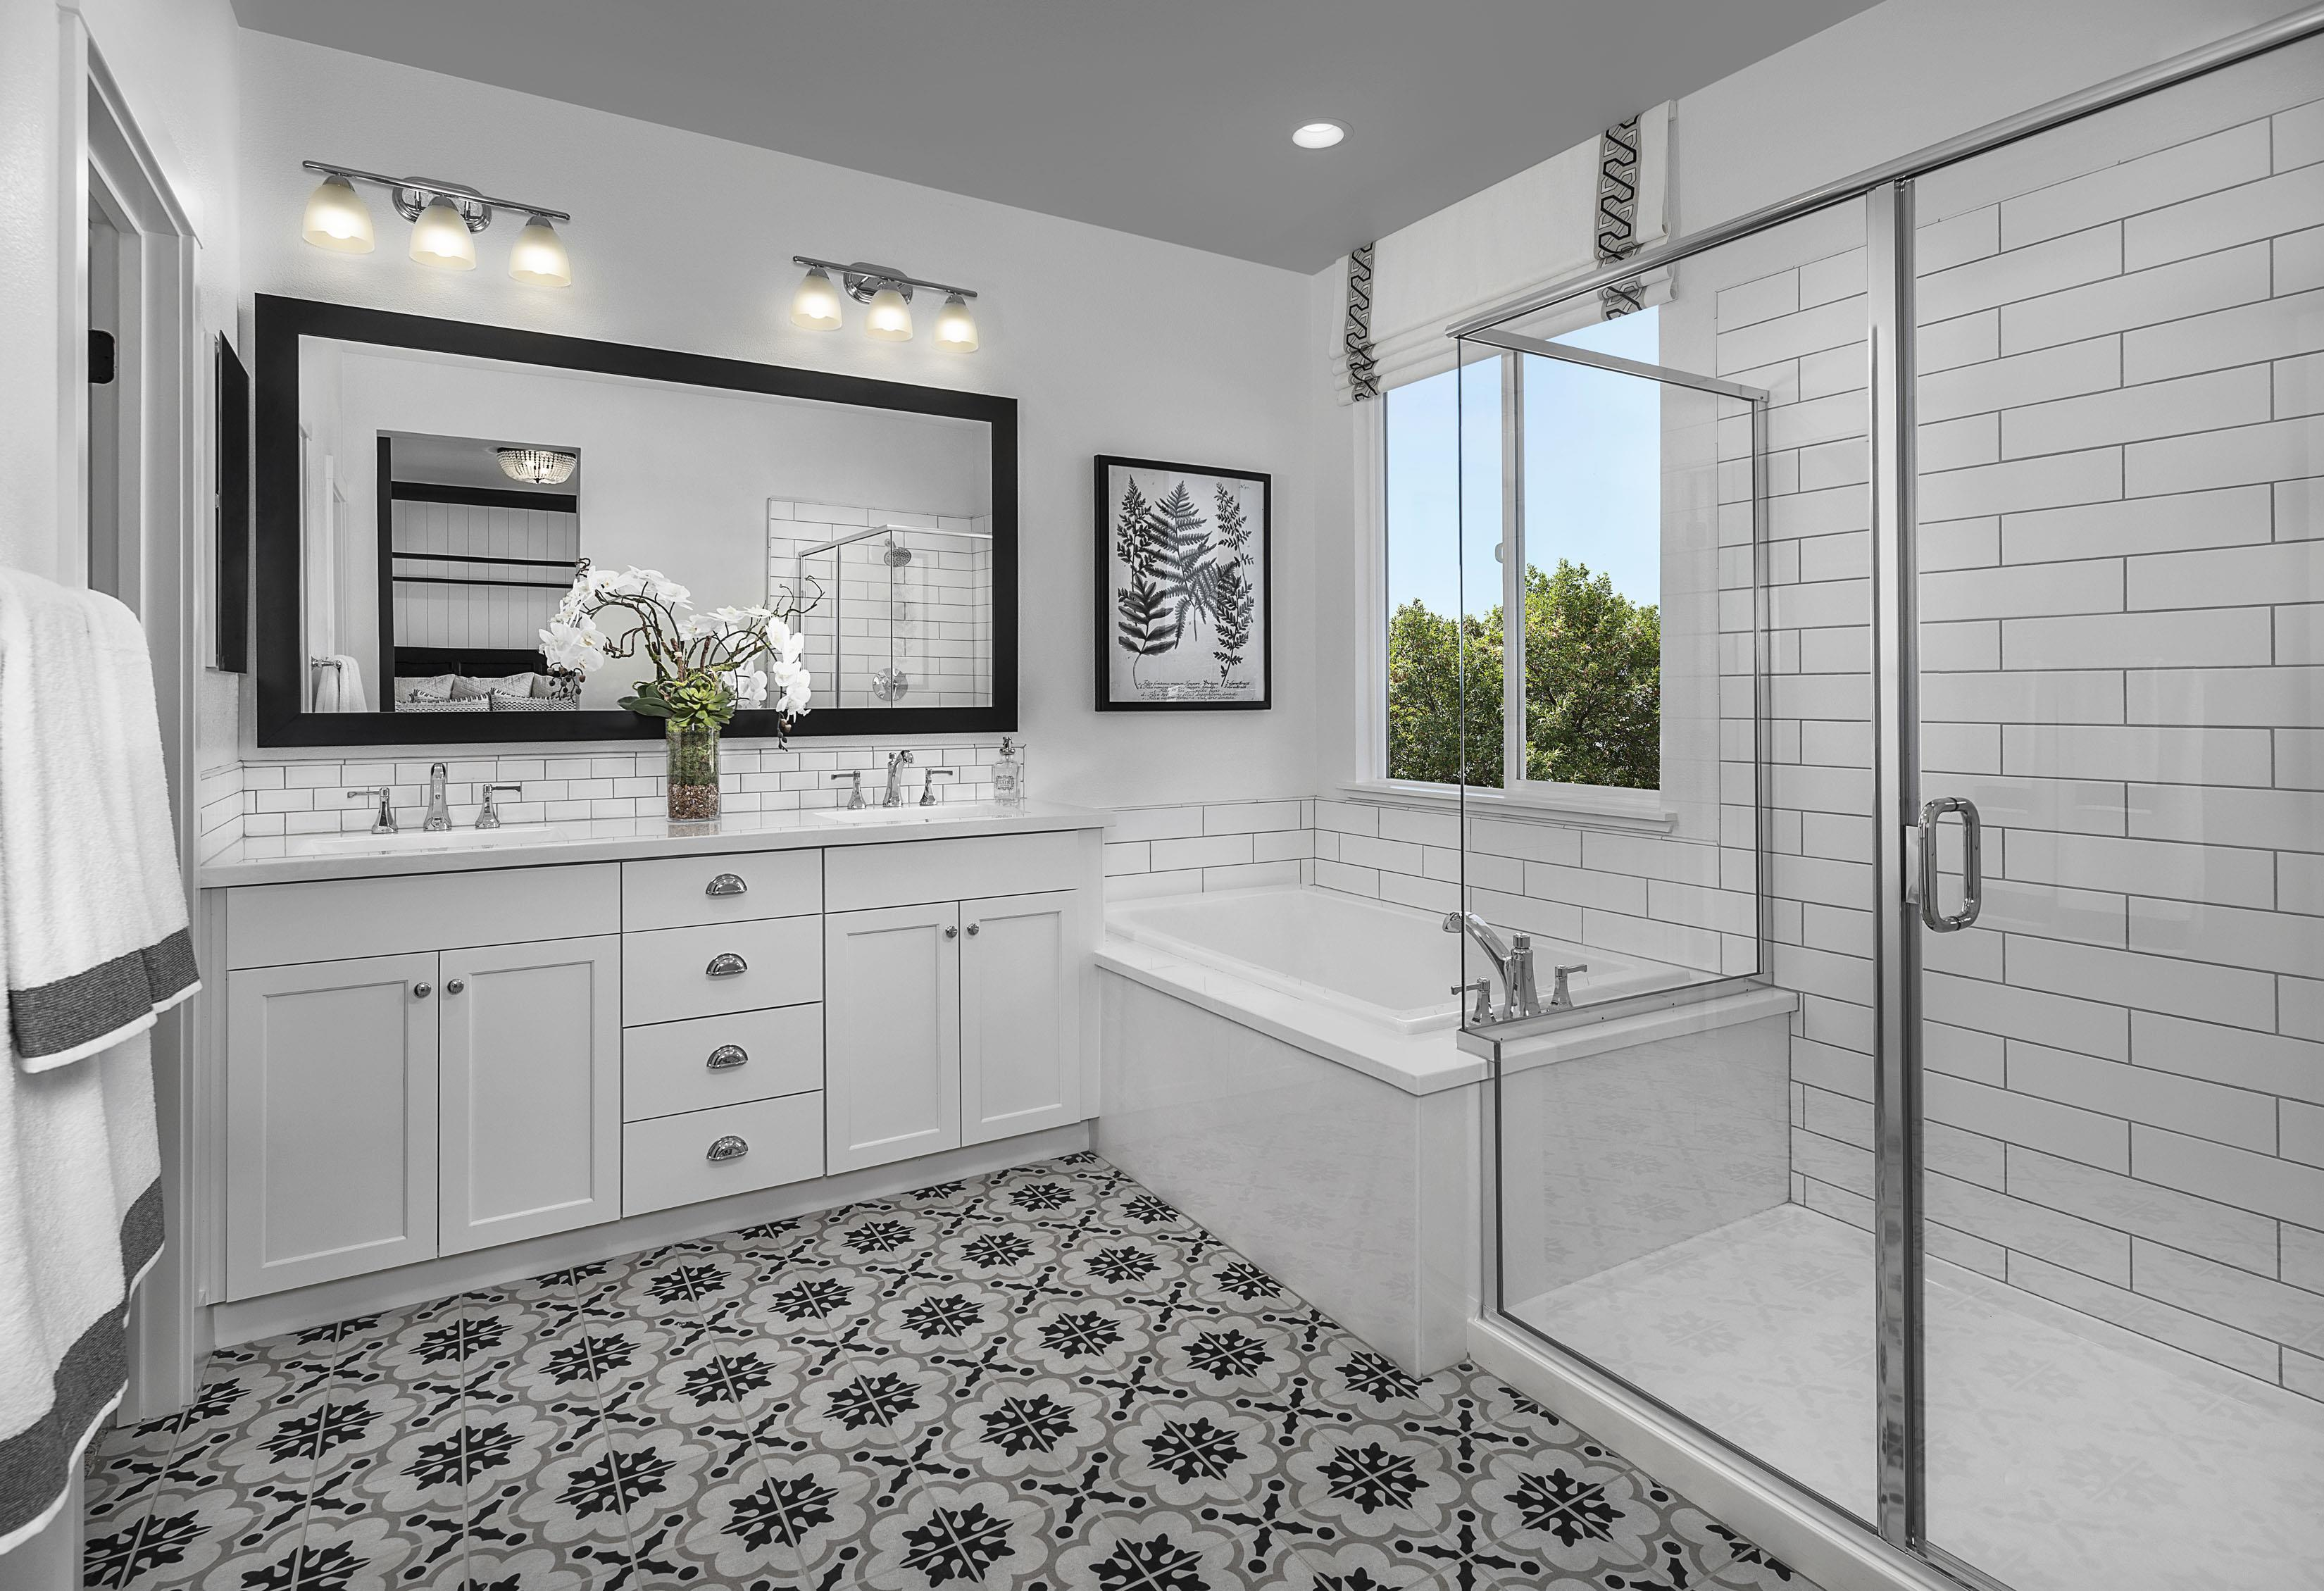 Bathroom featured in the Carousel Residence 3 By Kiper Homes in Santa Cruz, CA